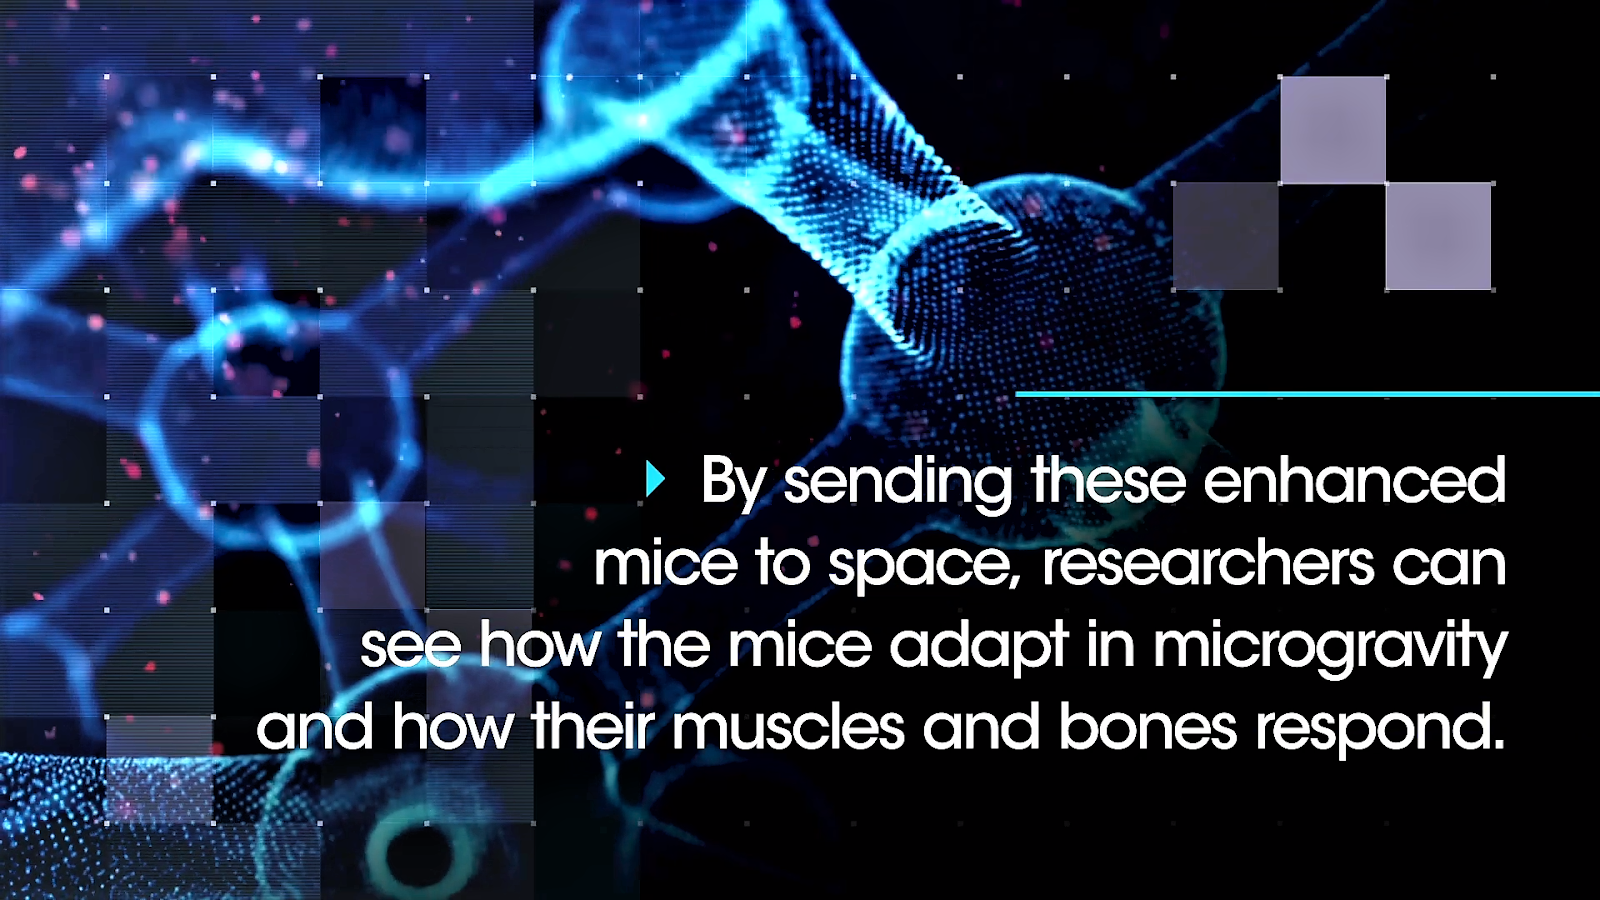 SpaceX Mighty Mice research.